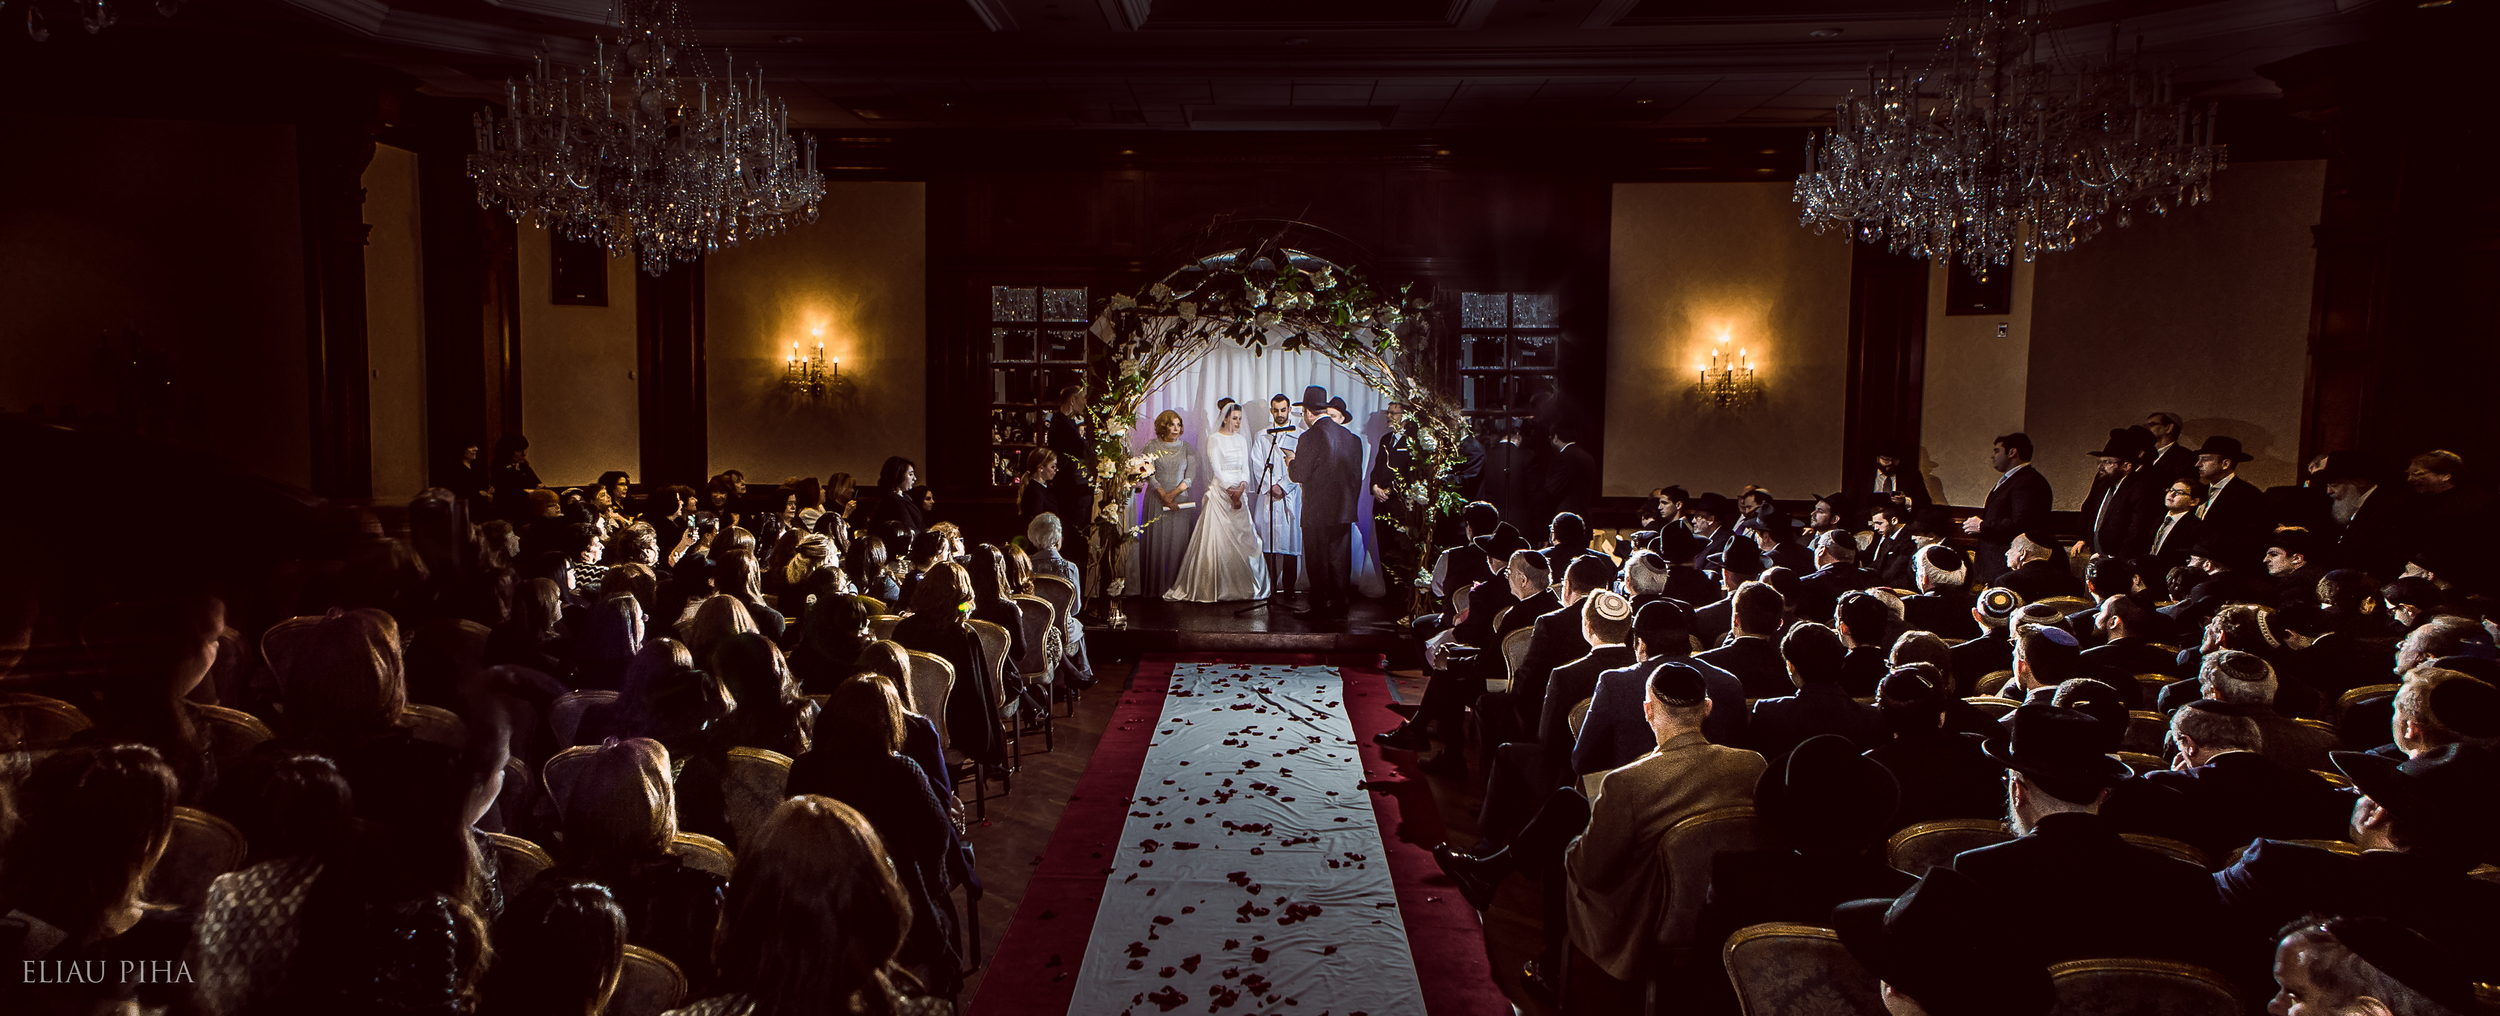 Wedding Sara and Ayal | Eliau Piha studio photography, new york, events, people-44.jpg